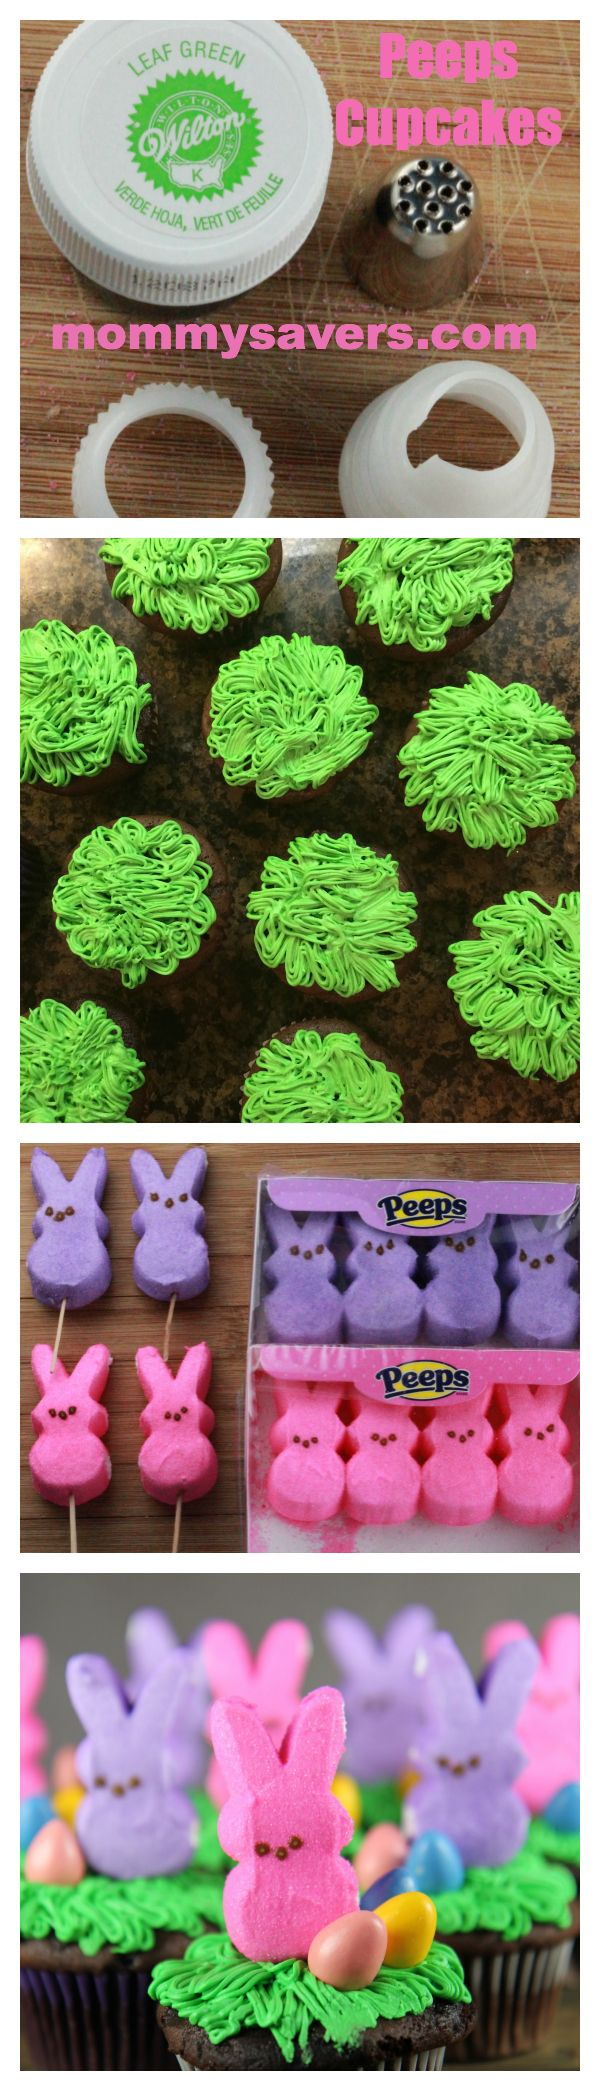 Easter Peeps Cupcakes! (although i think peeps r so gross)